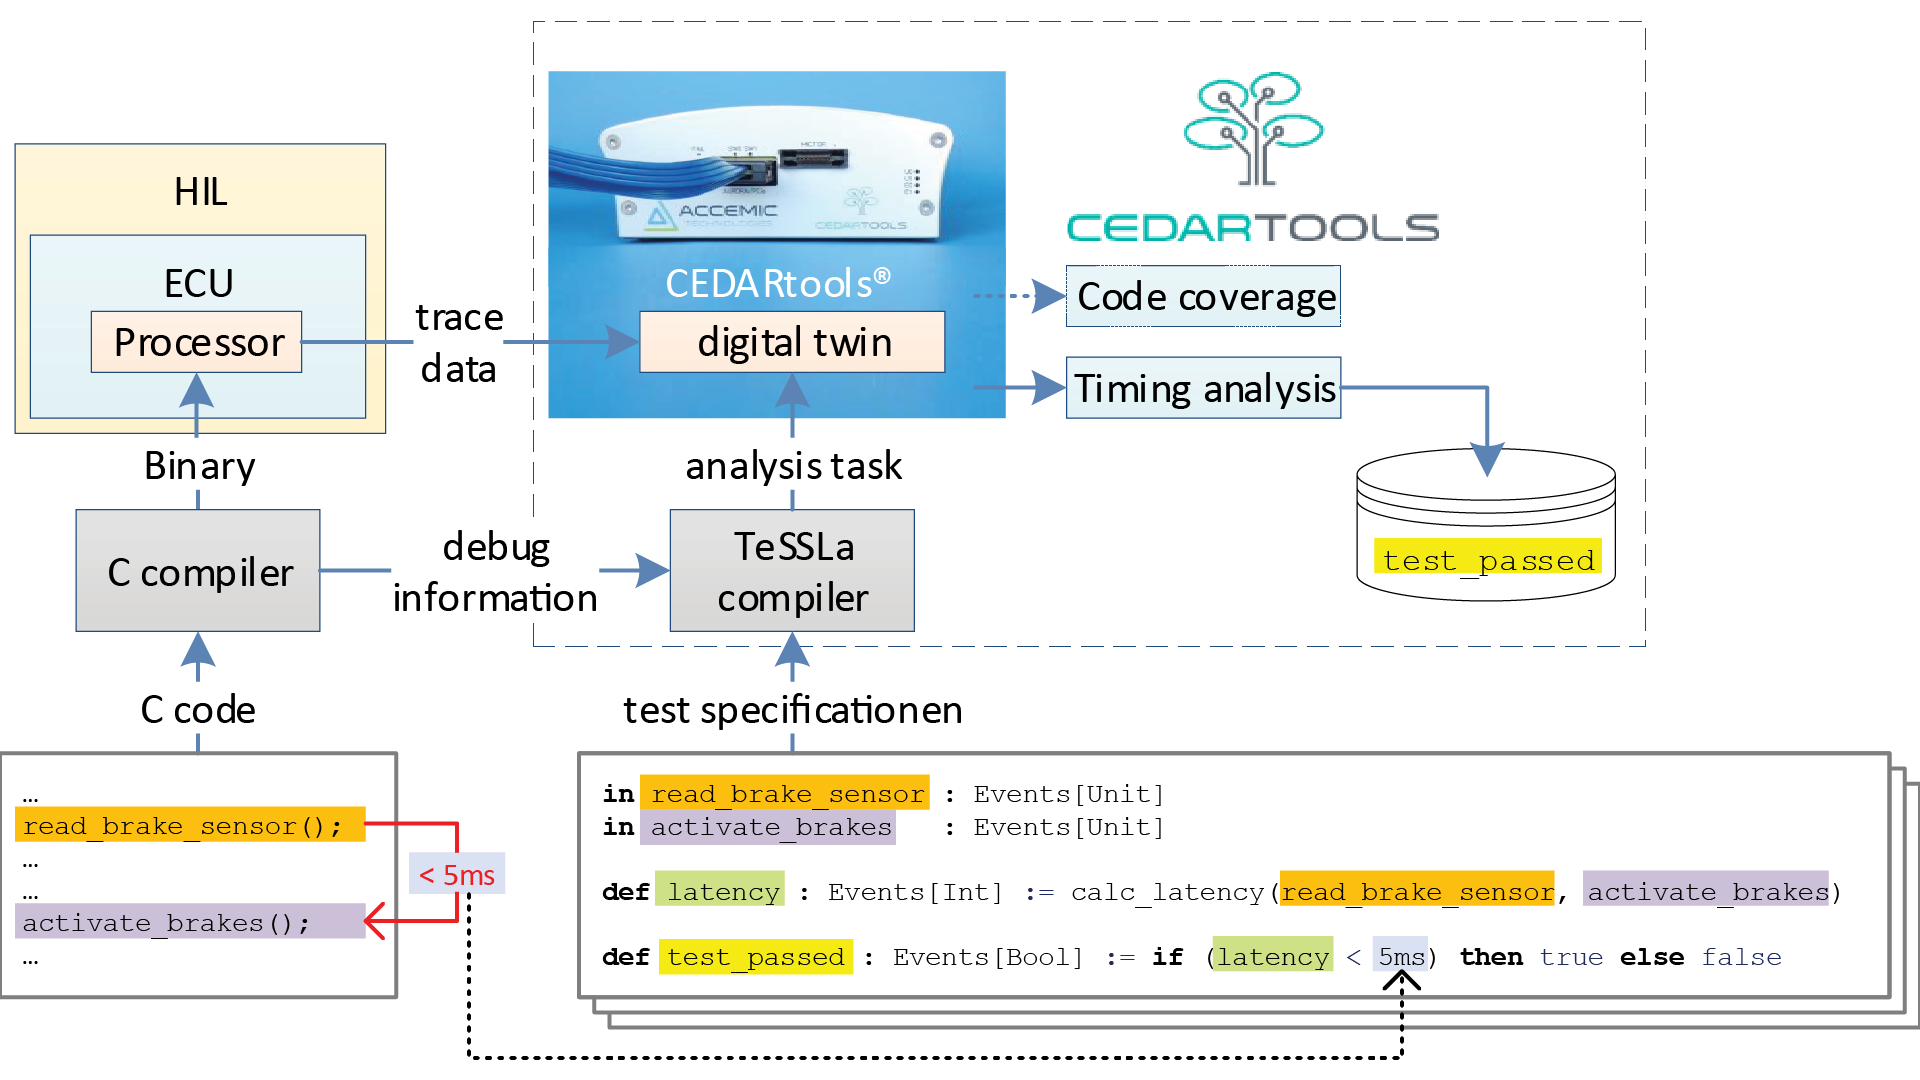 Cedartools overview